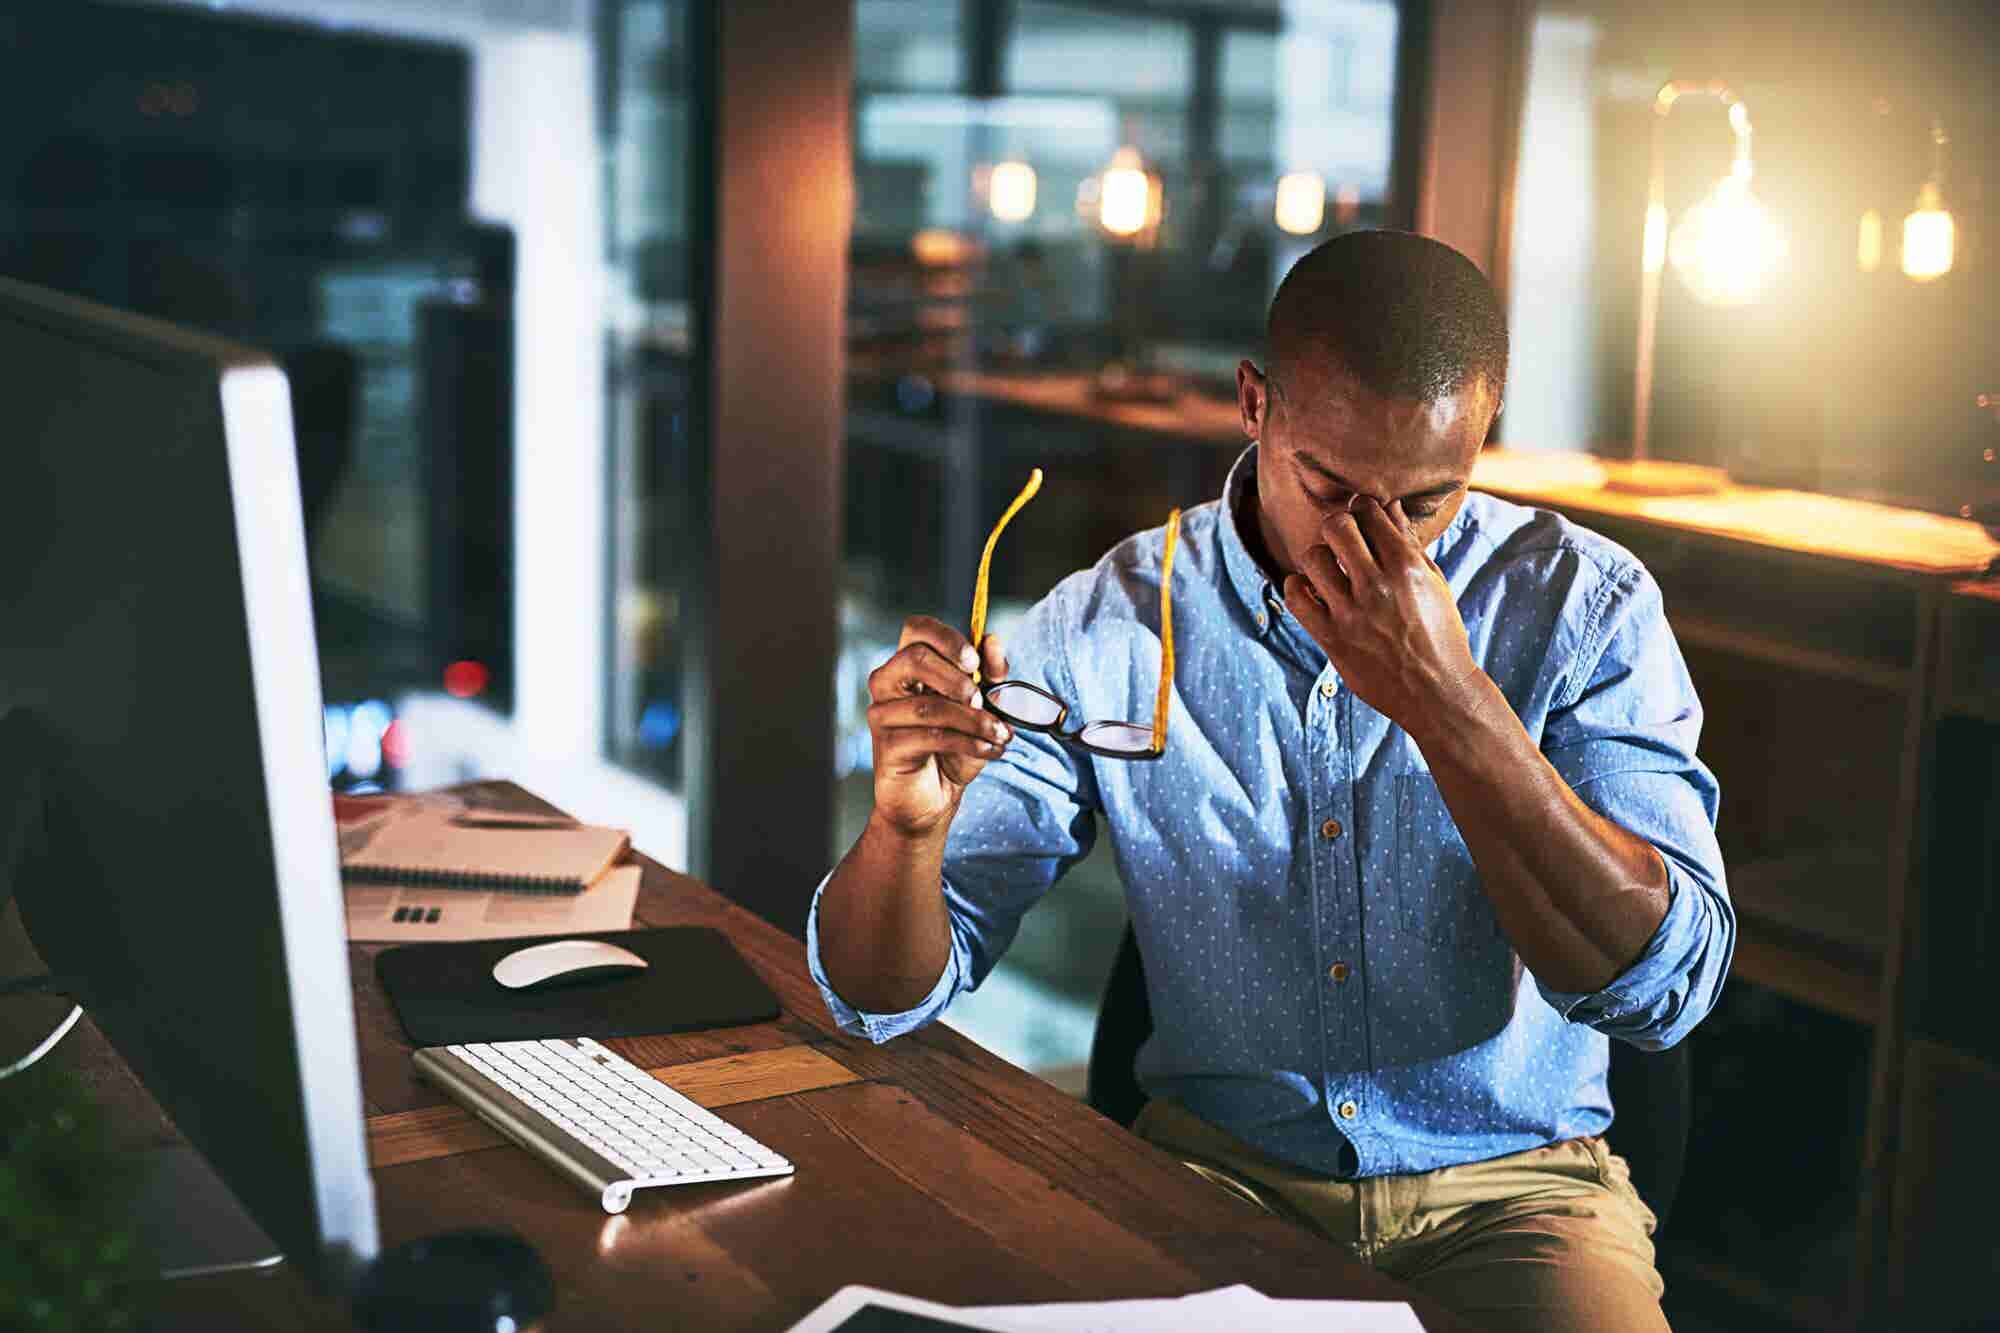 This Is What Makes You Stressed at Work, According to New Study